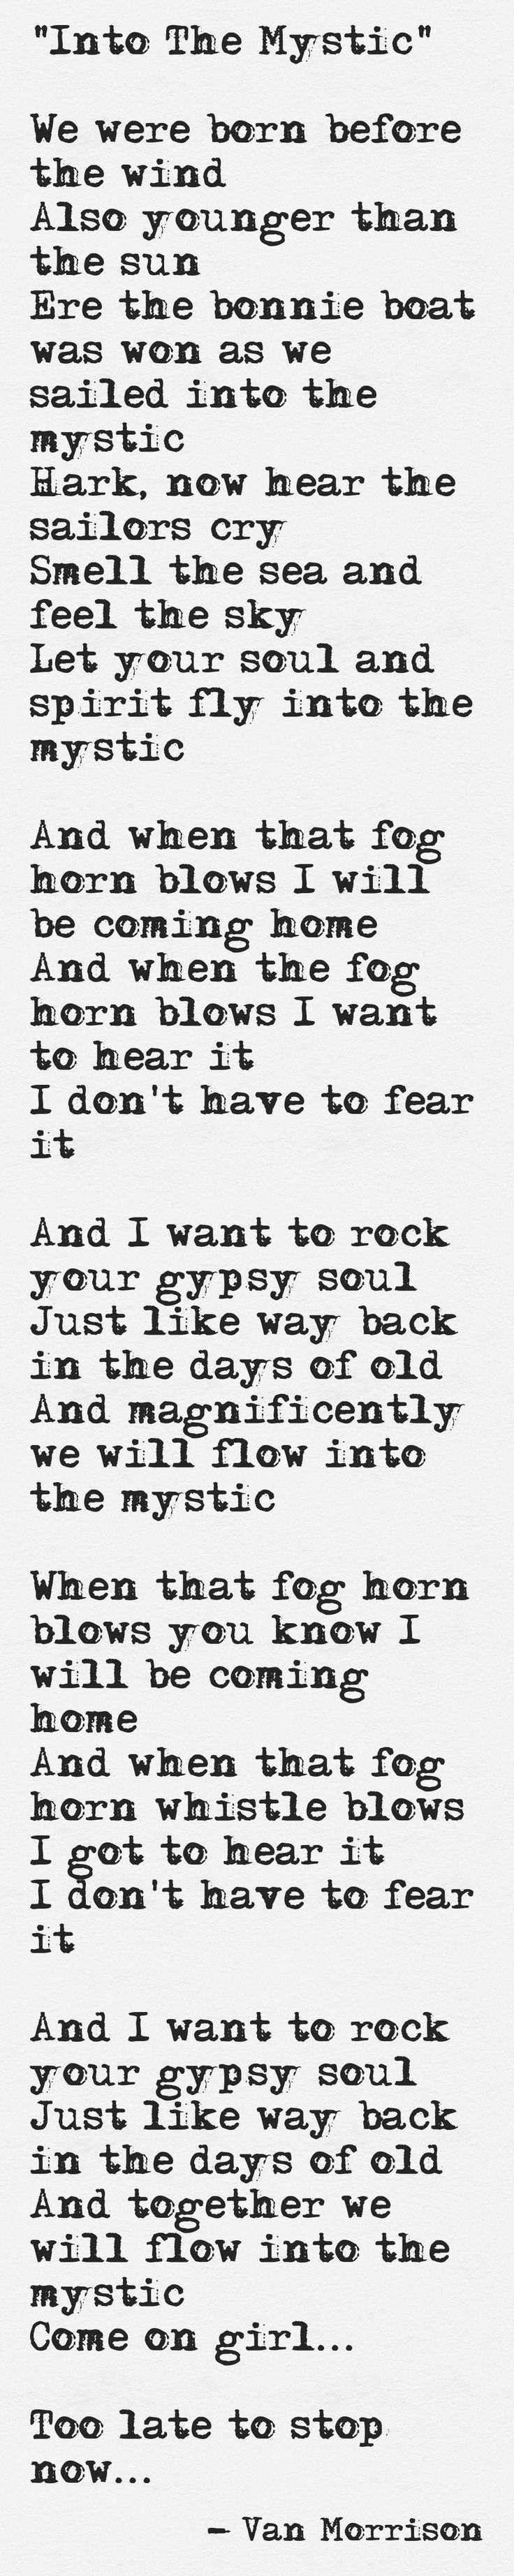 Van Morrison Into The Mystic Lyrics One Of My Favorite Songs